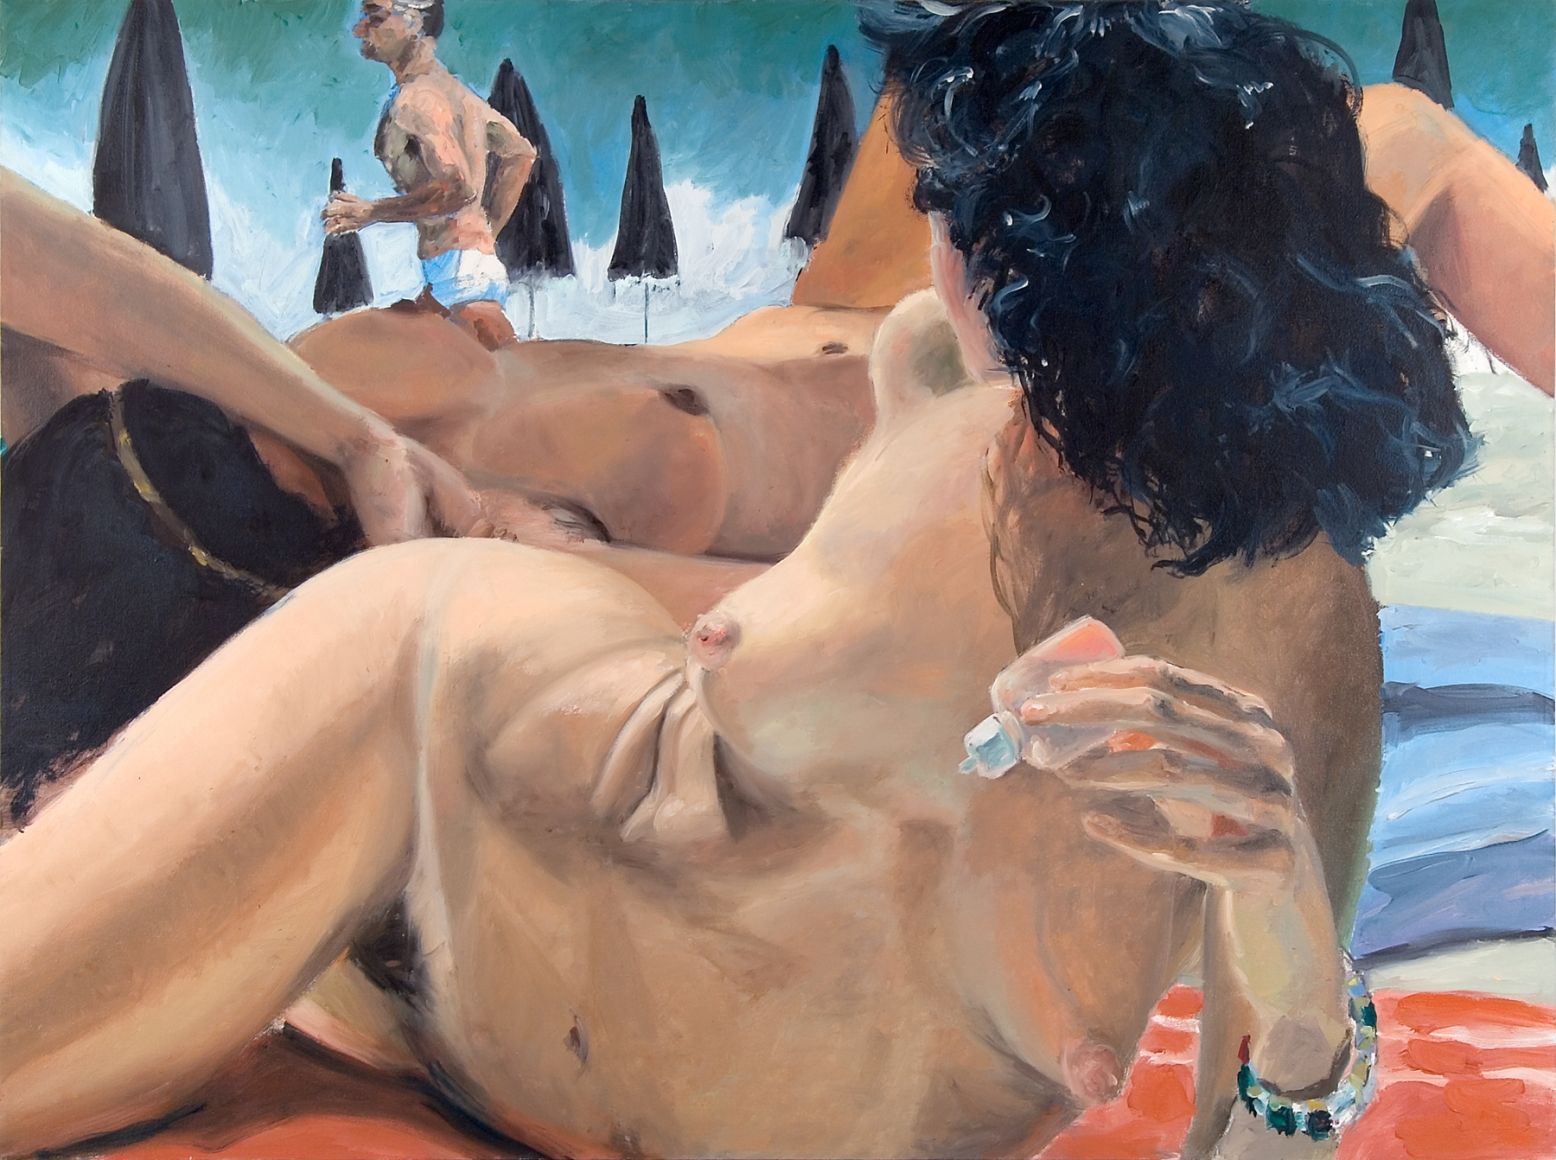 Eric Fischl, The Day the Shah Ran By, 1982, Oil on canvas, 36 x 48 in. (91.5 x 121.9 cm)